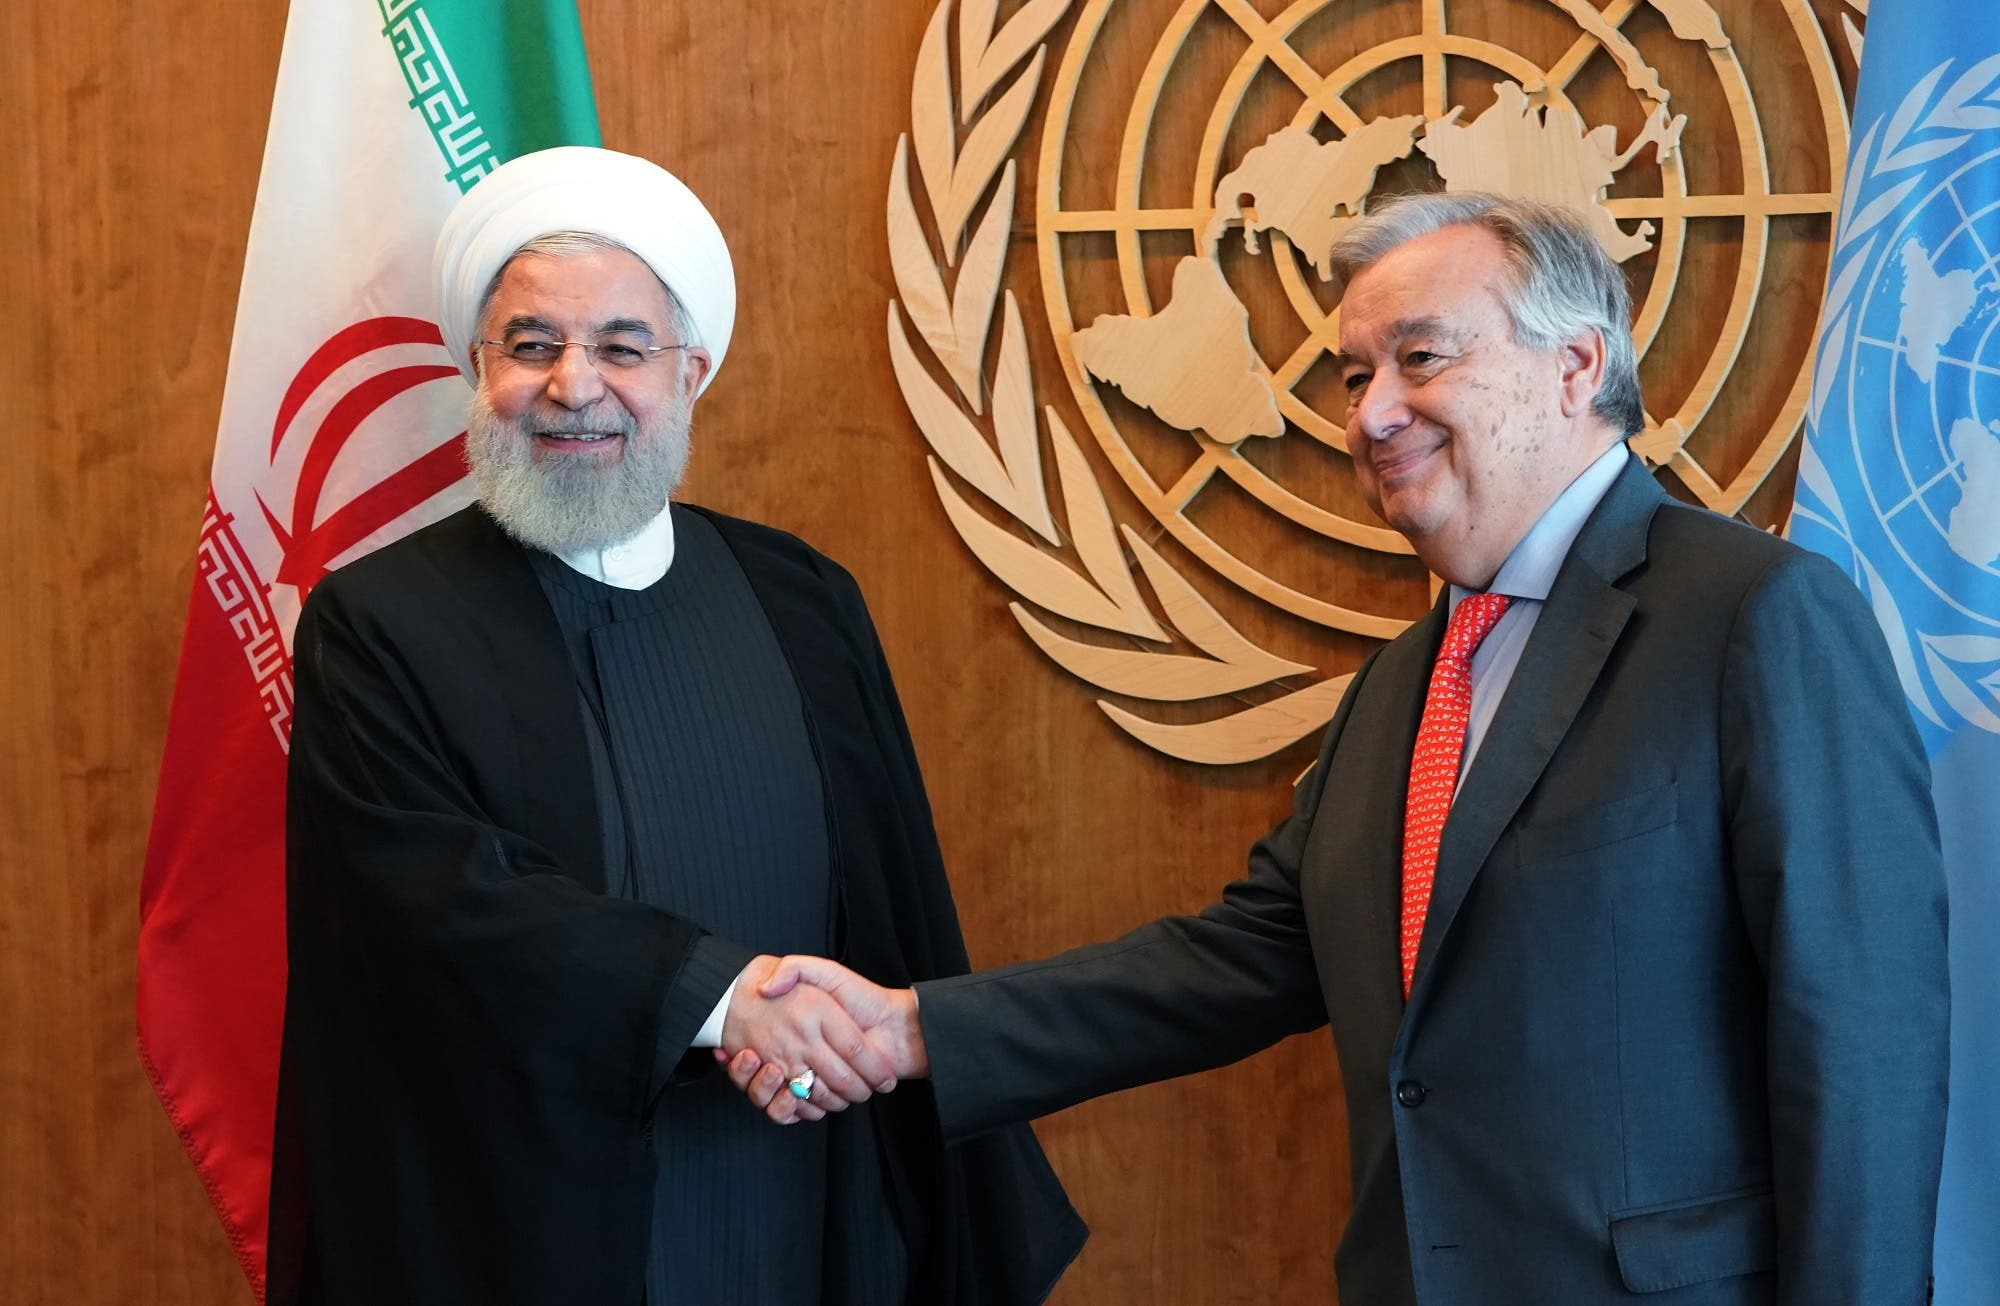 President Rouhani meets with UN Secretary General Antonio Guterres in New York on September 26, 2018, on the sidelines of the United Nations General Assembly. (AFP)